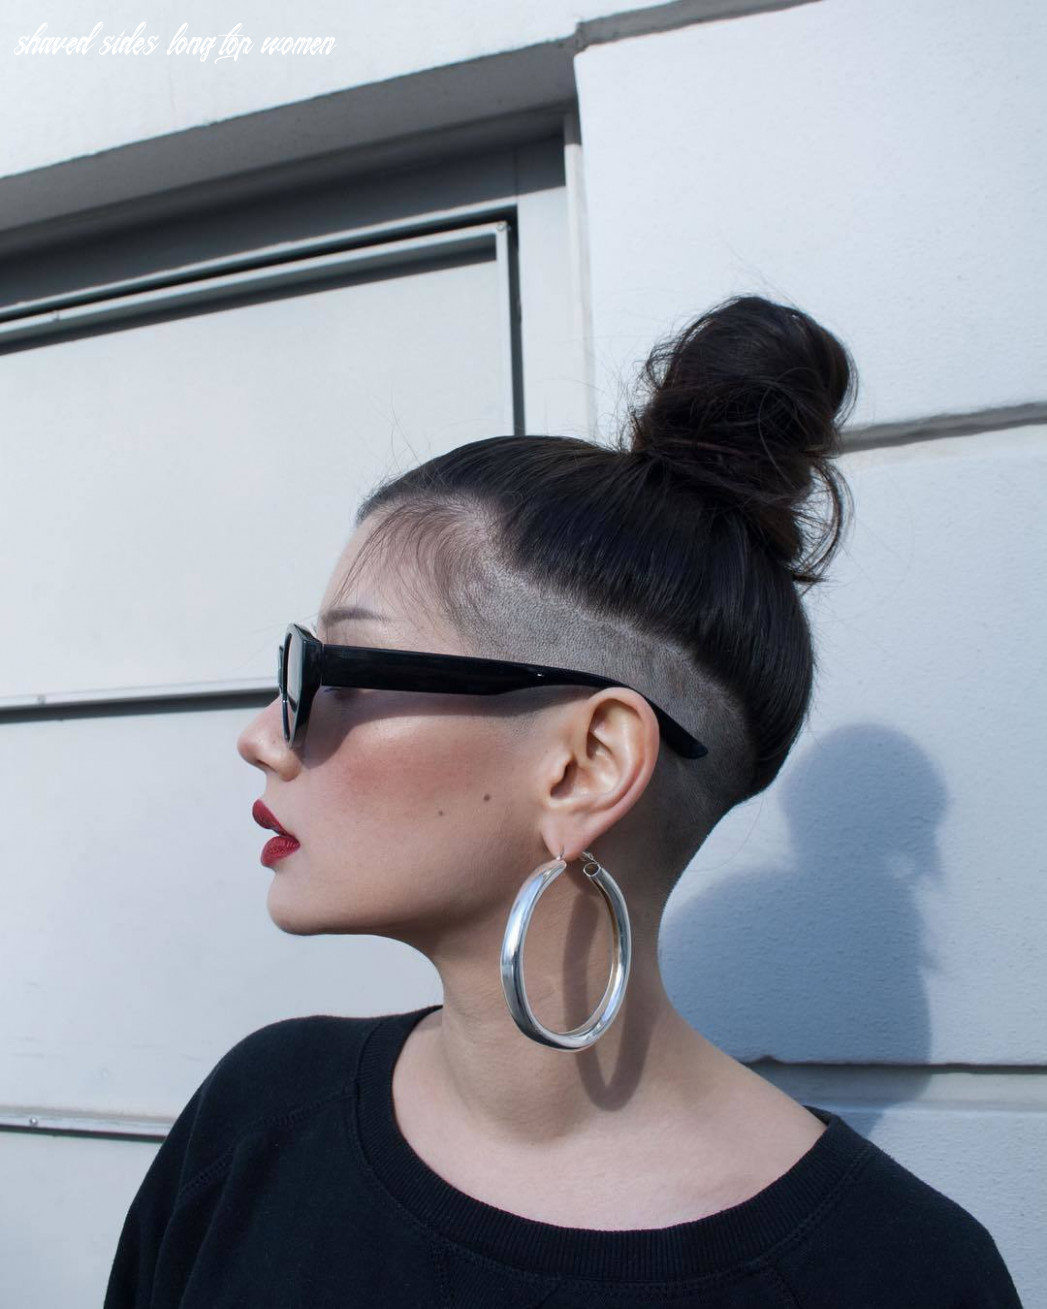 8 bold shaved hairstyles for women | shaved hair designs shaved sides long top women